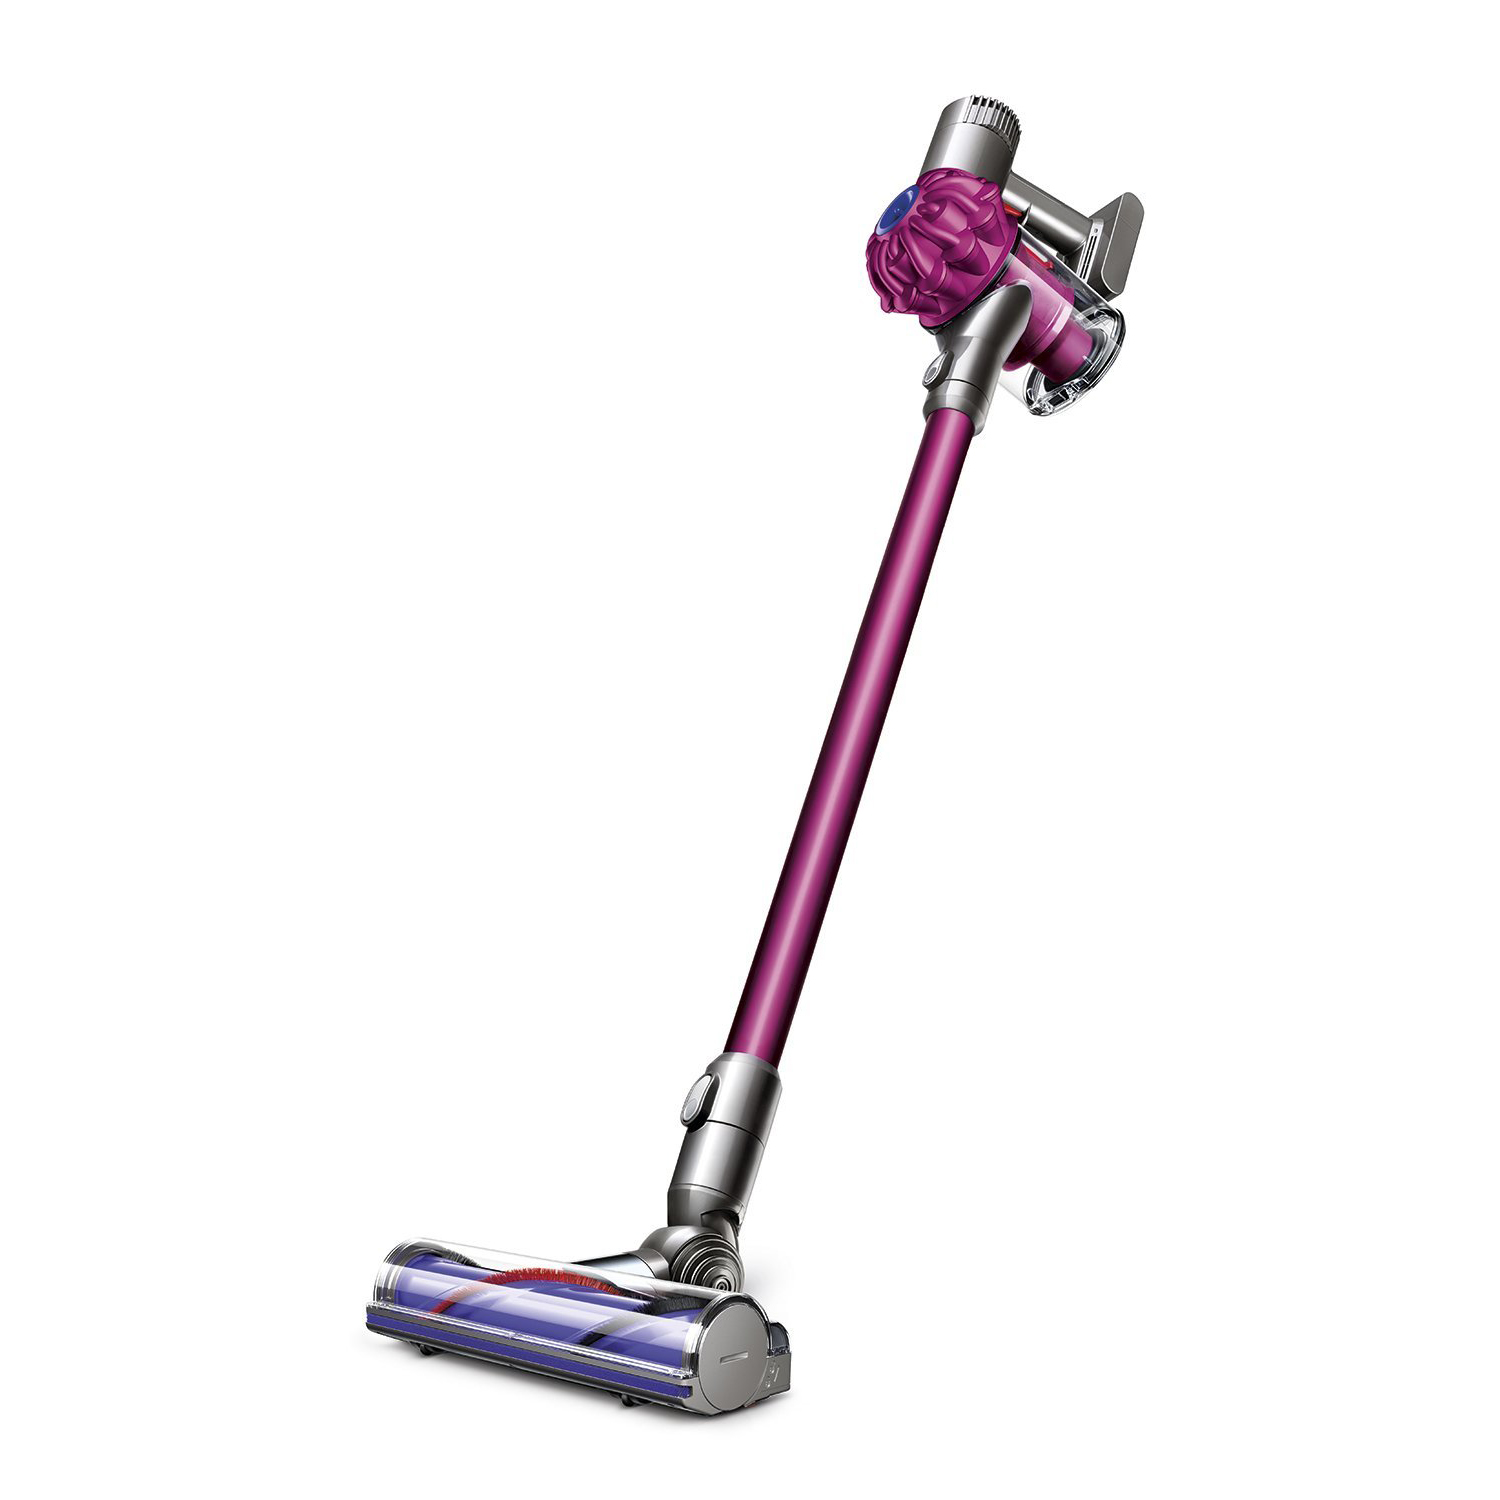 dyson v6 vs dc35 what are the similarities and differences between these two dyson canister. Black Bedroom Furniture Sets. Home Design Ideas